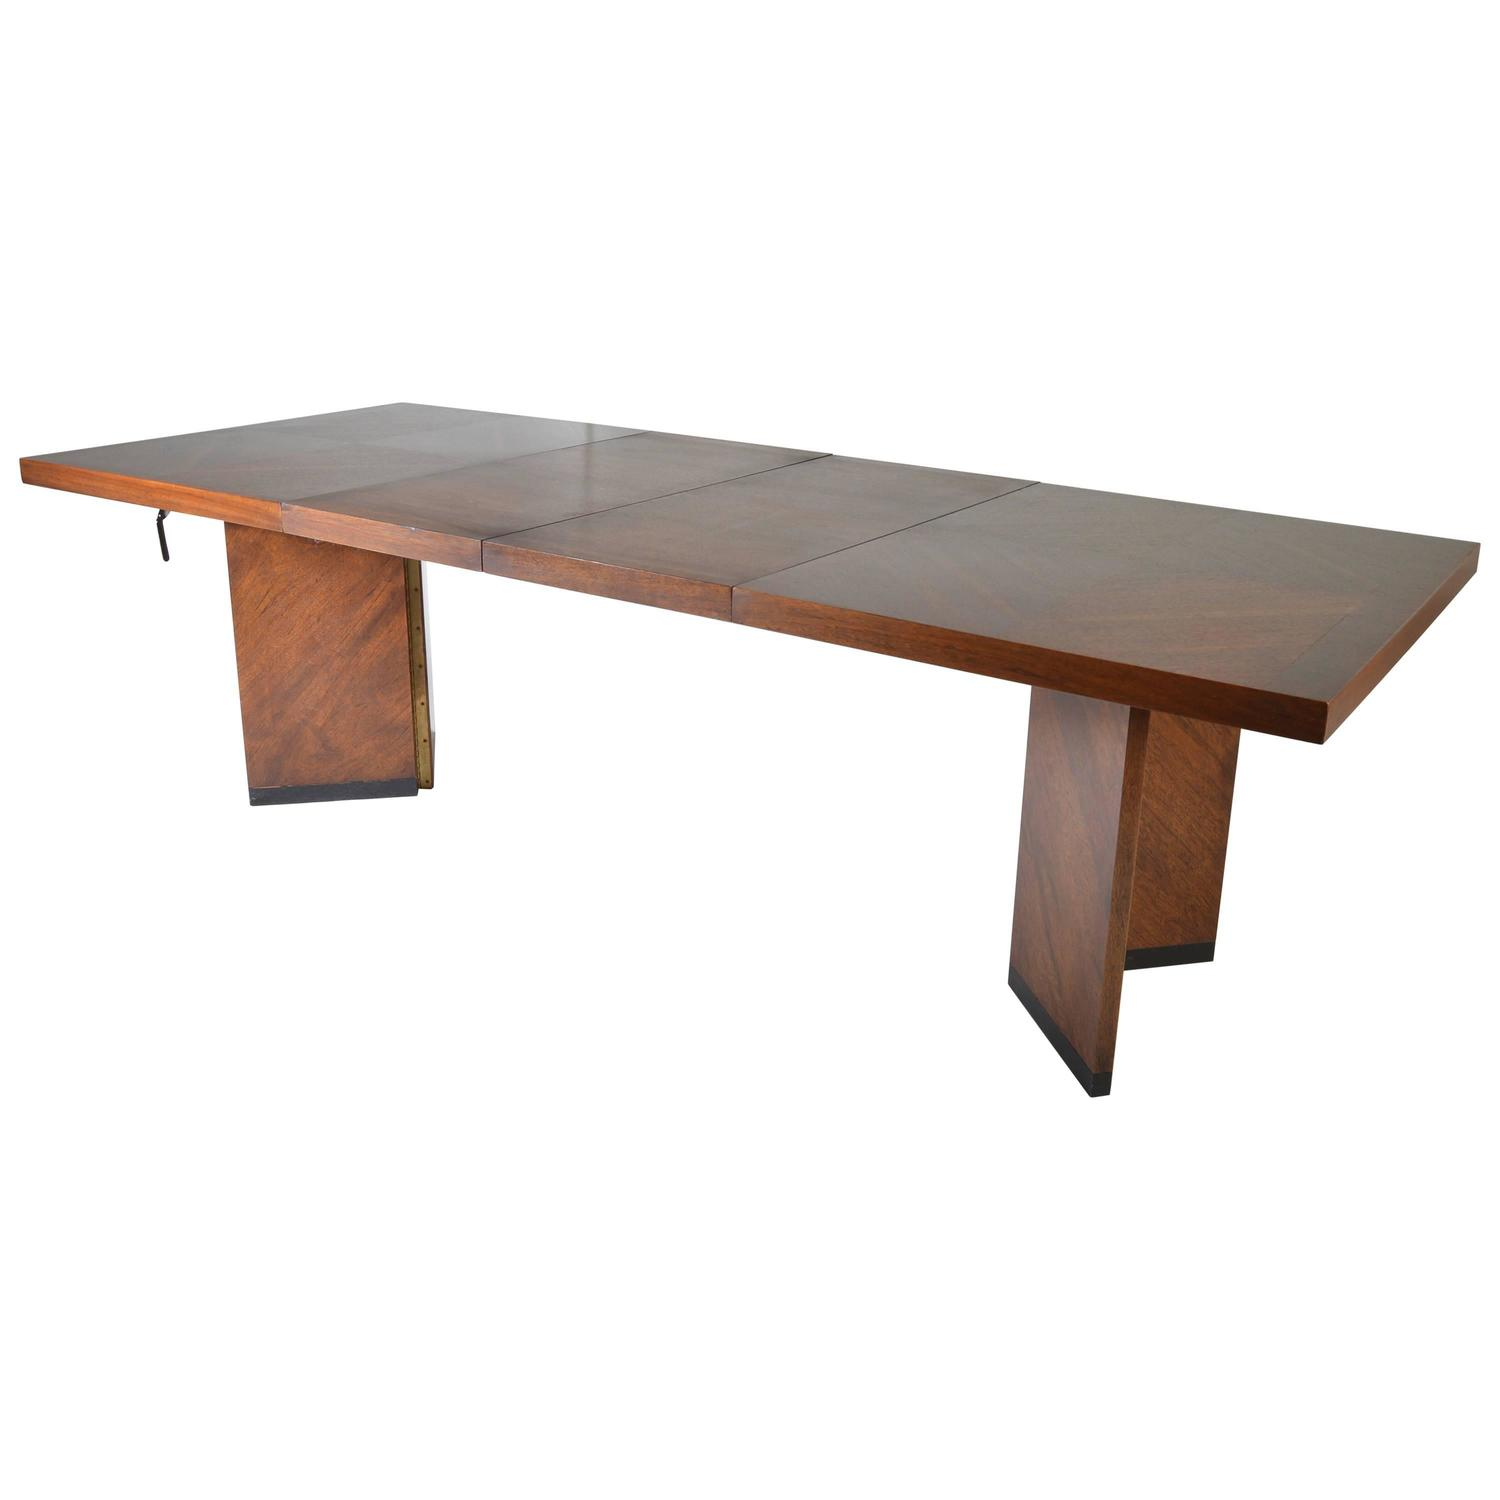 Midcentury Brutalist Walnut Dining Table By Lane At 1stdibs